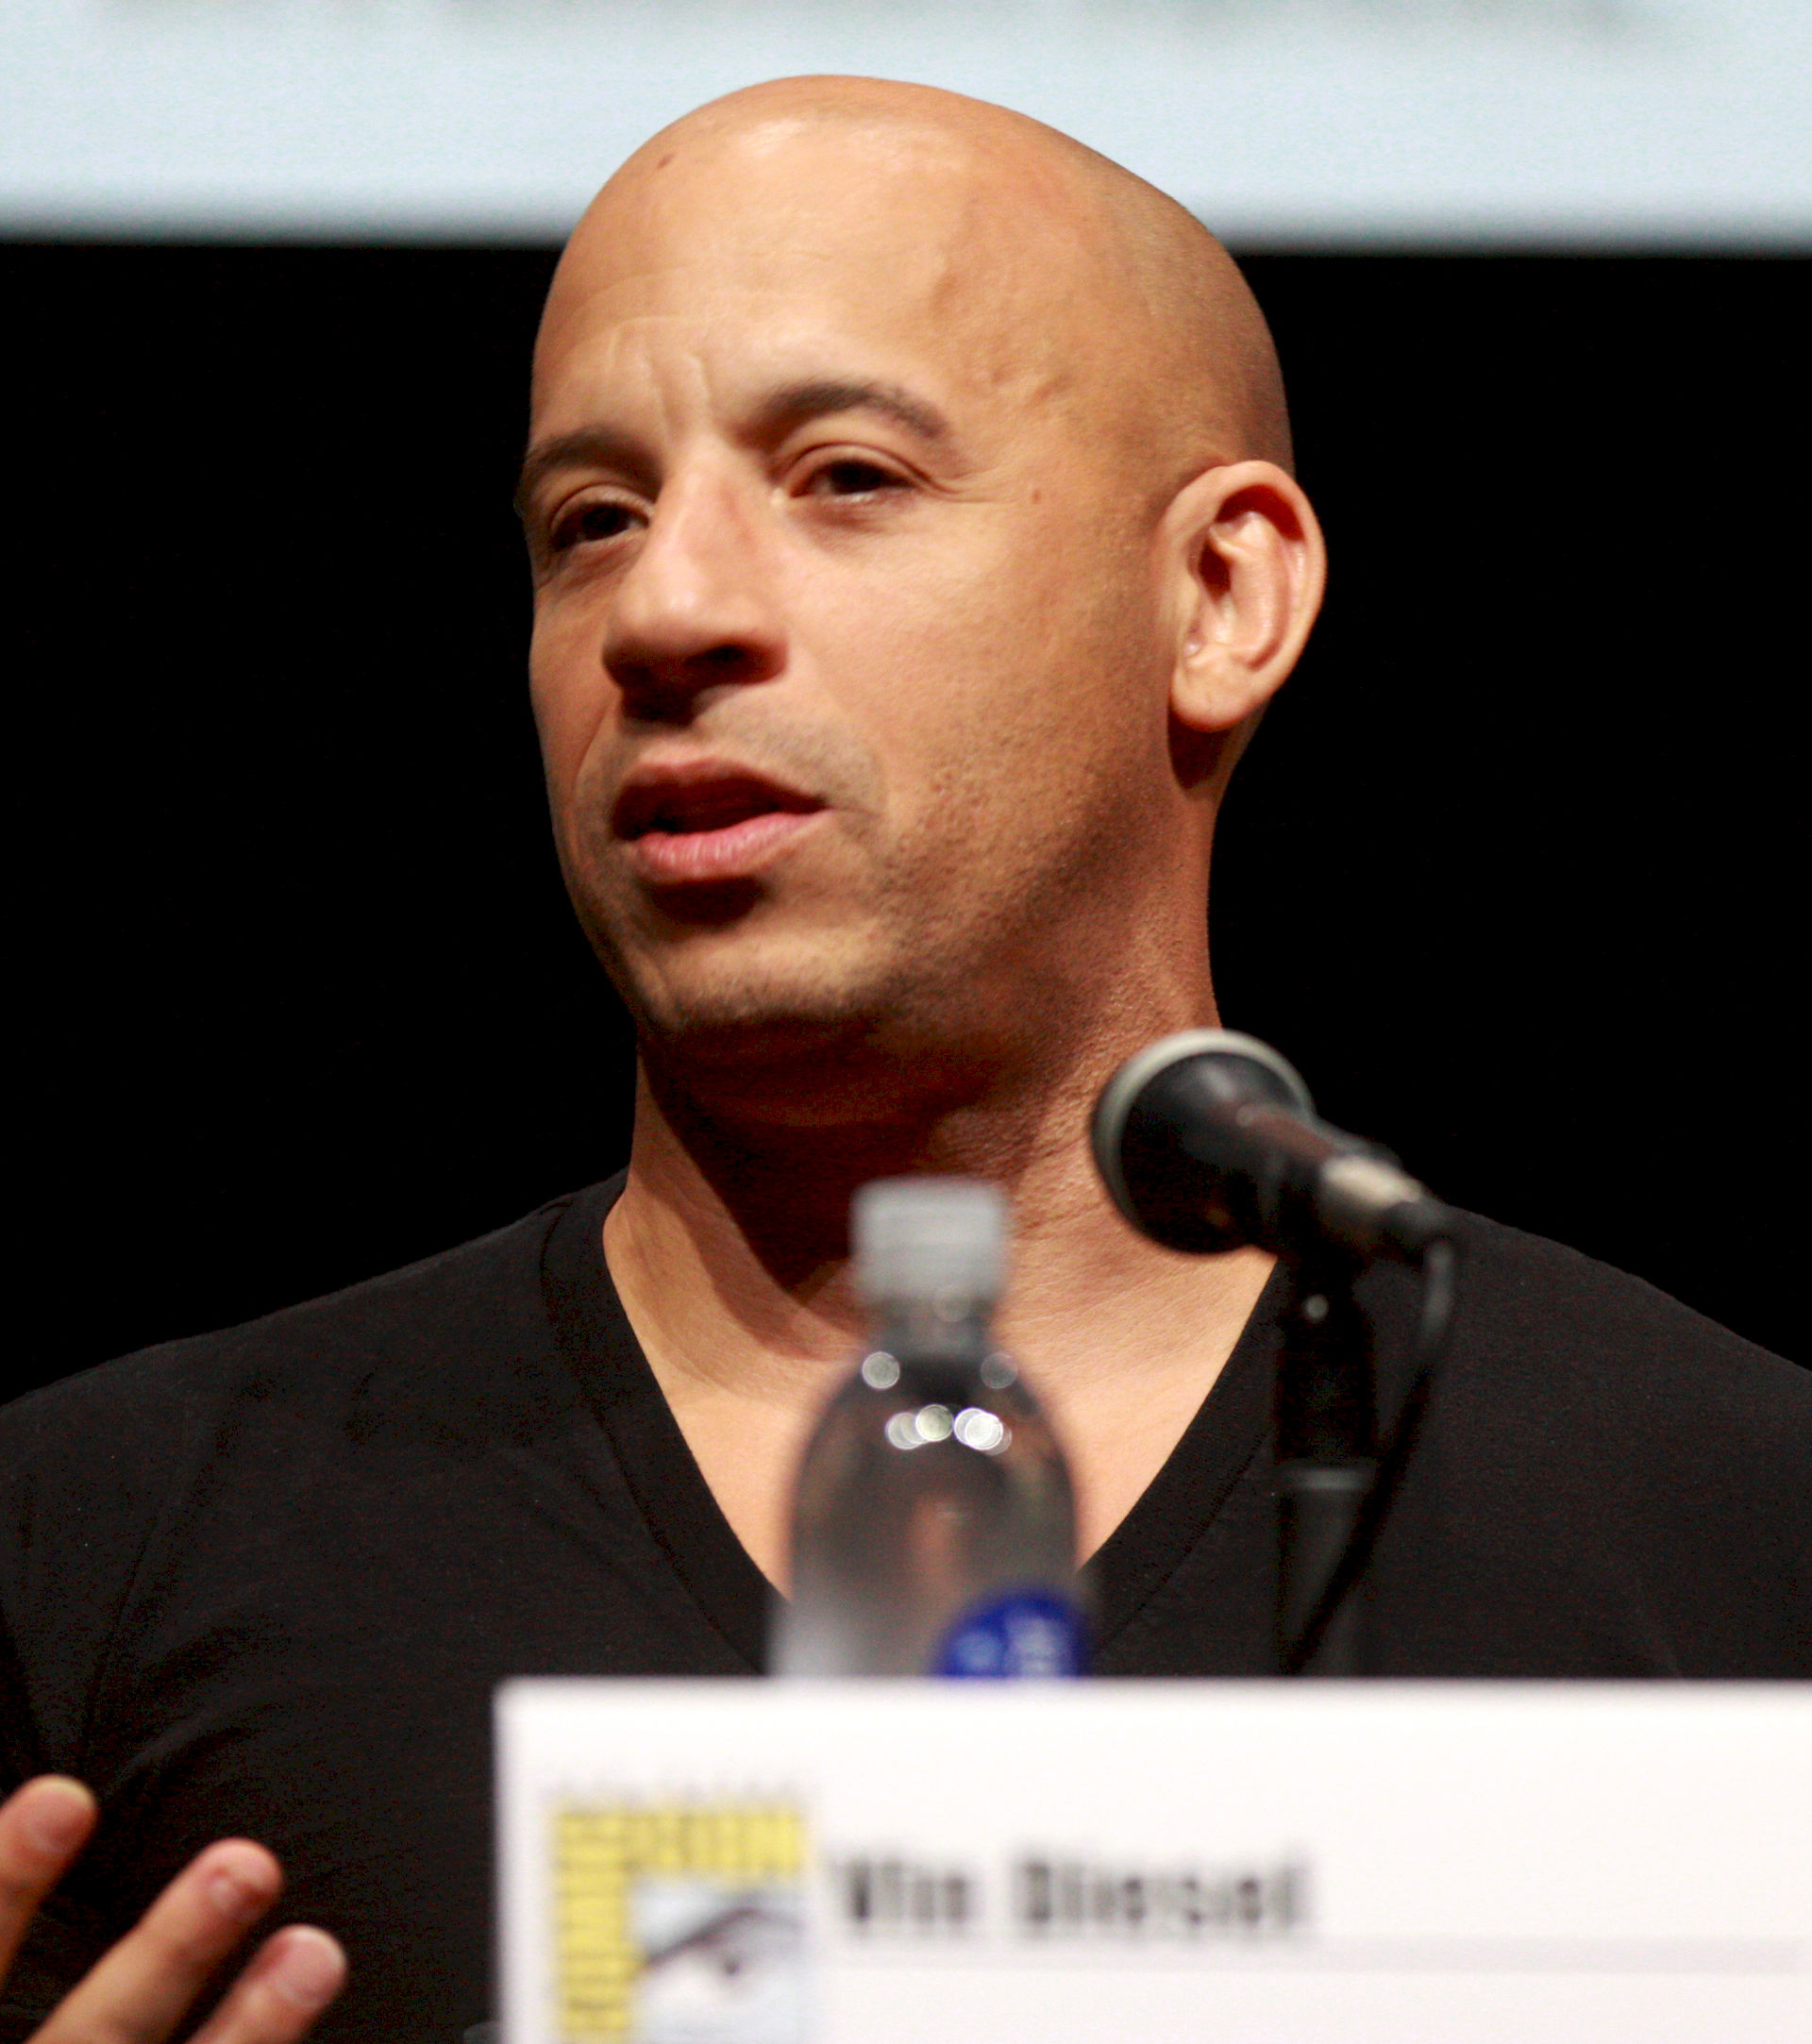 Photo of Vin Diesel: American actor, producer, director, and screenwriter